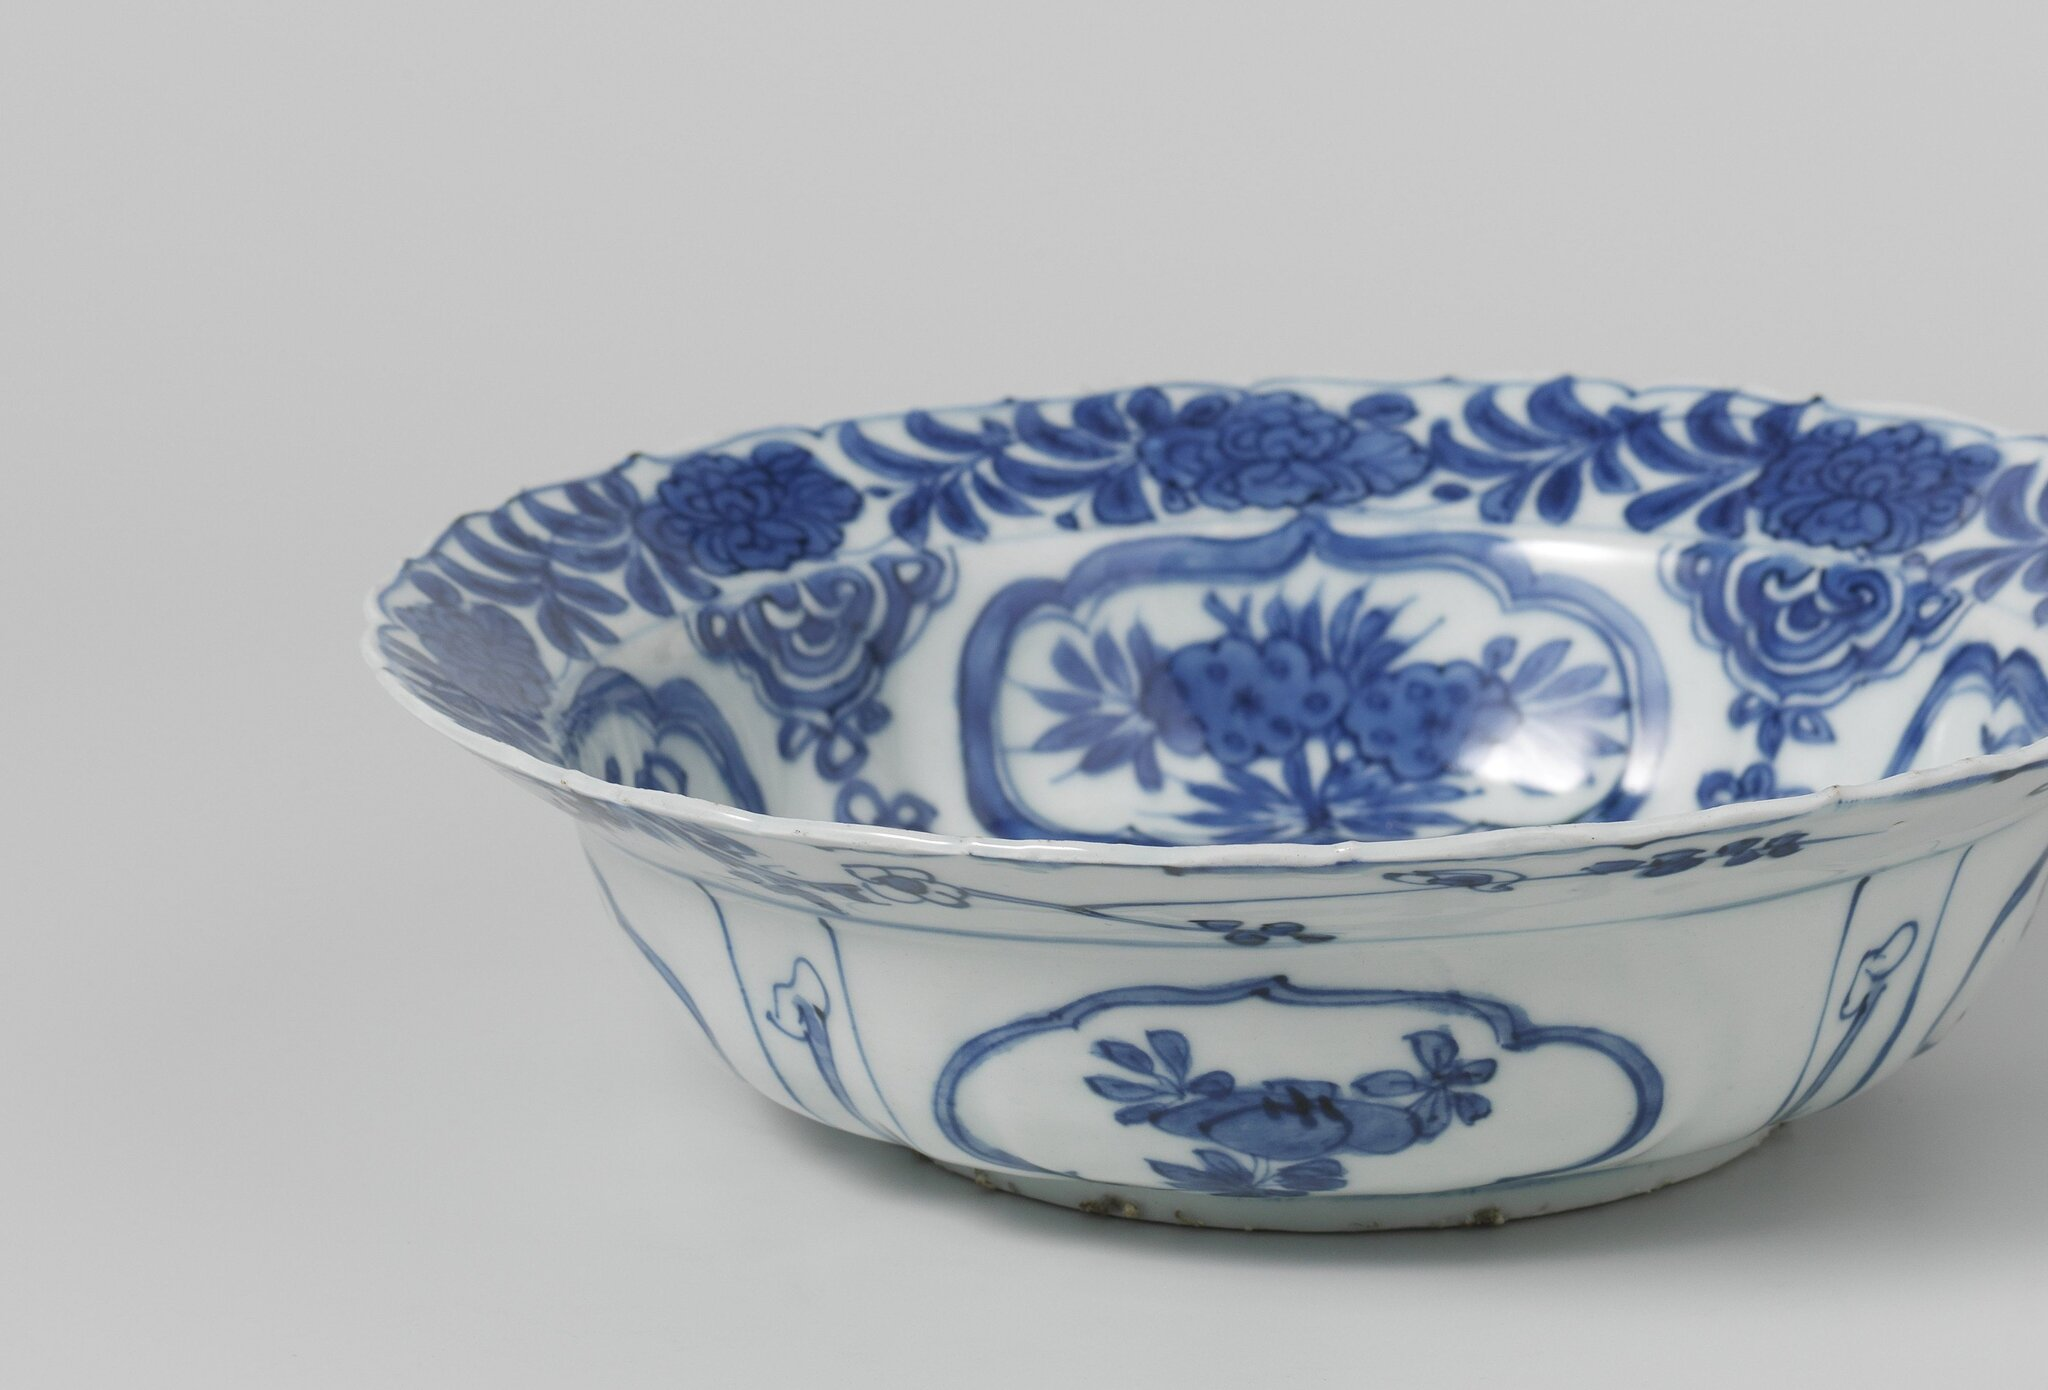 Blue_and_white_klapmuts_bowl__Wanli_period__1573_1619___1580_1620